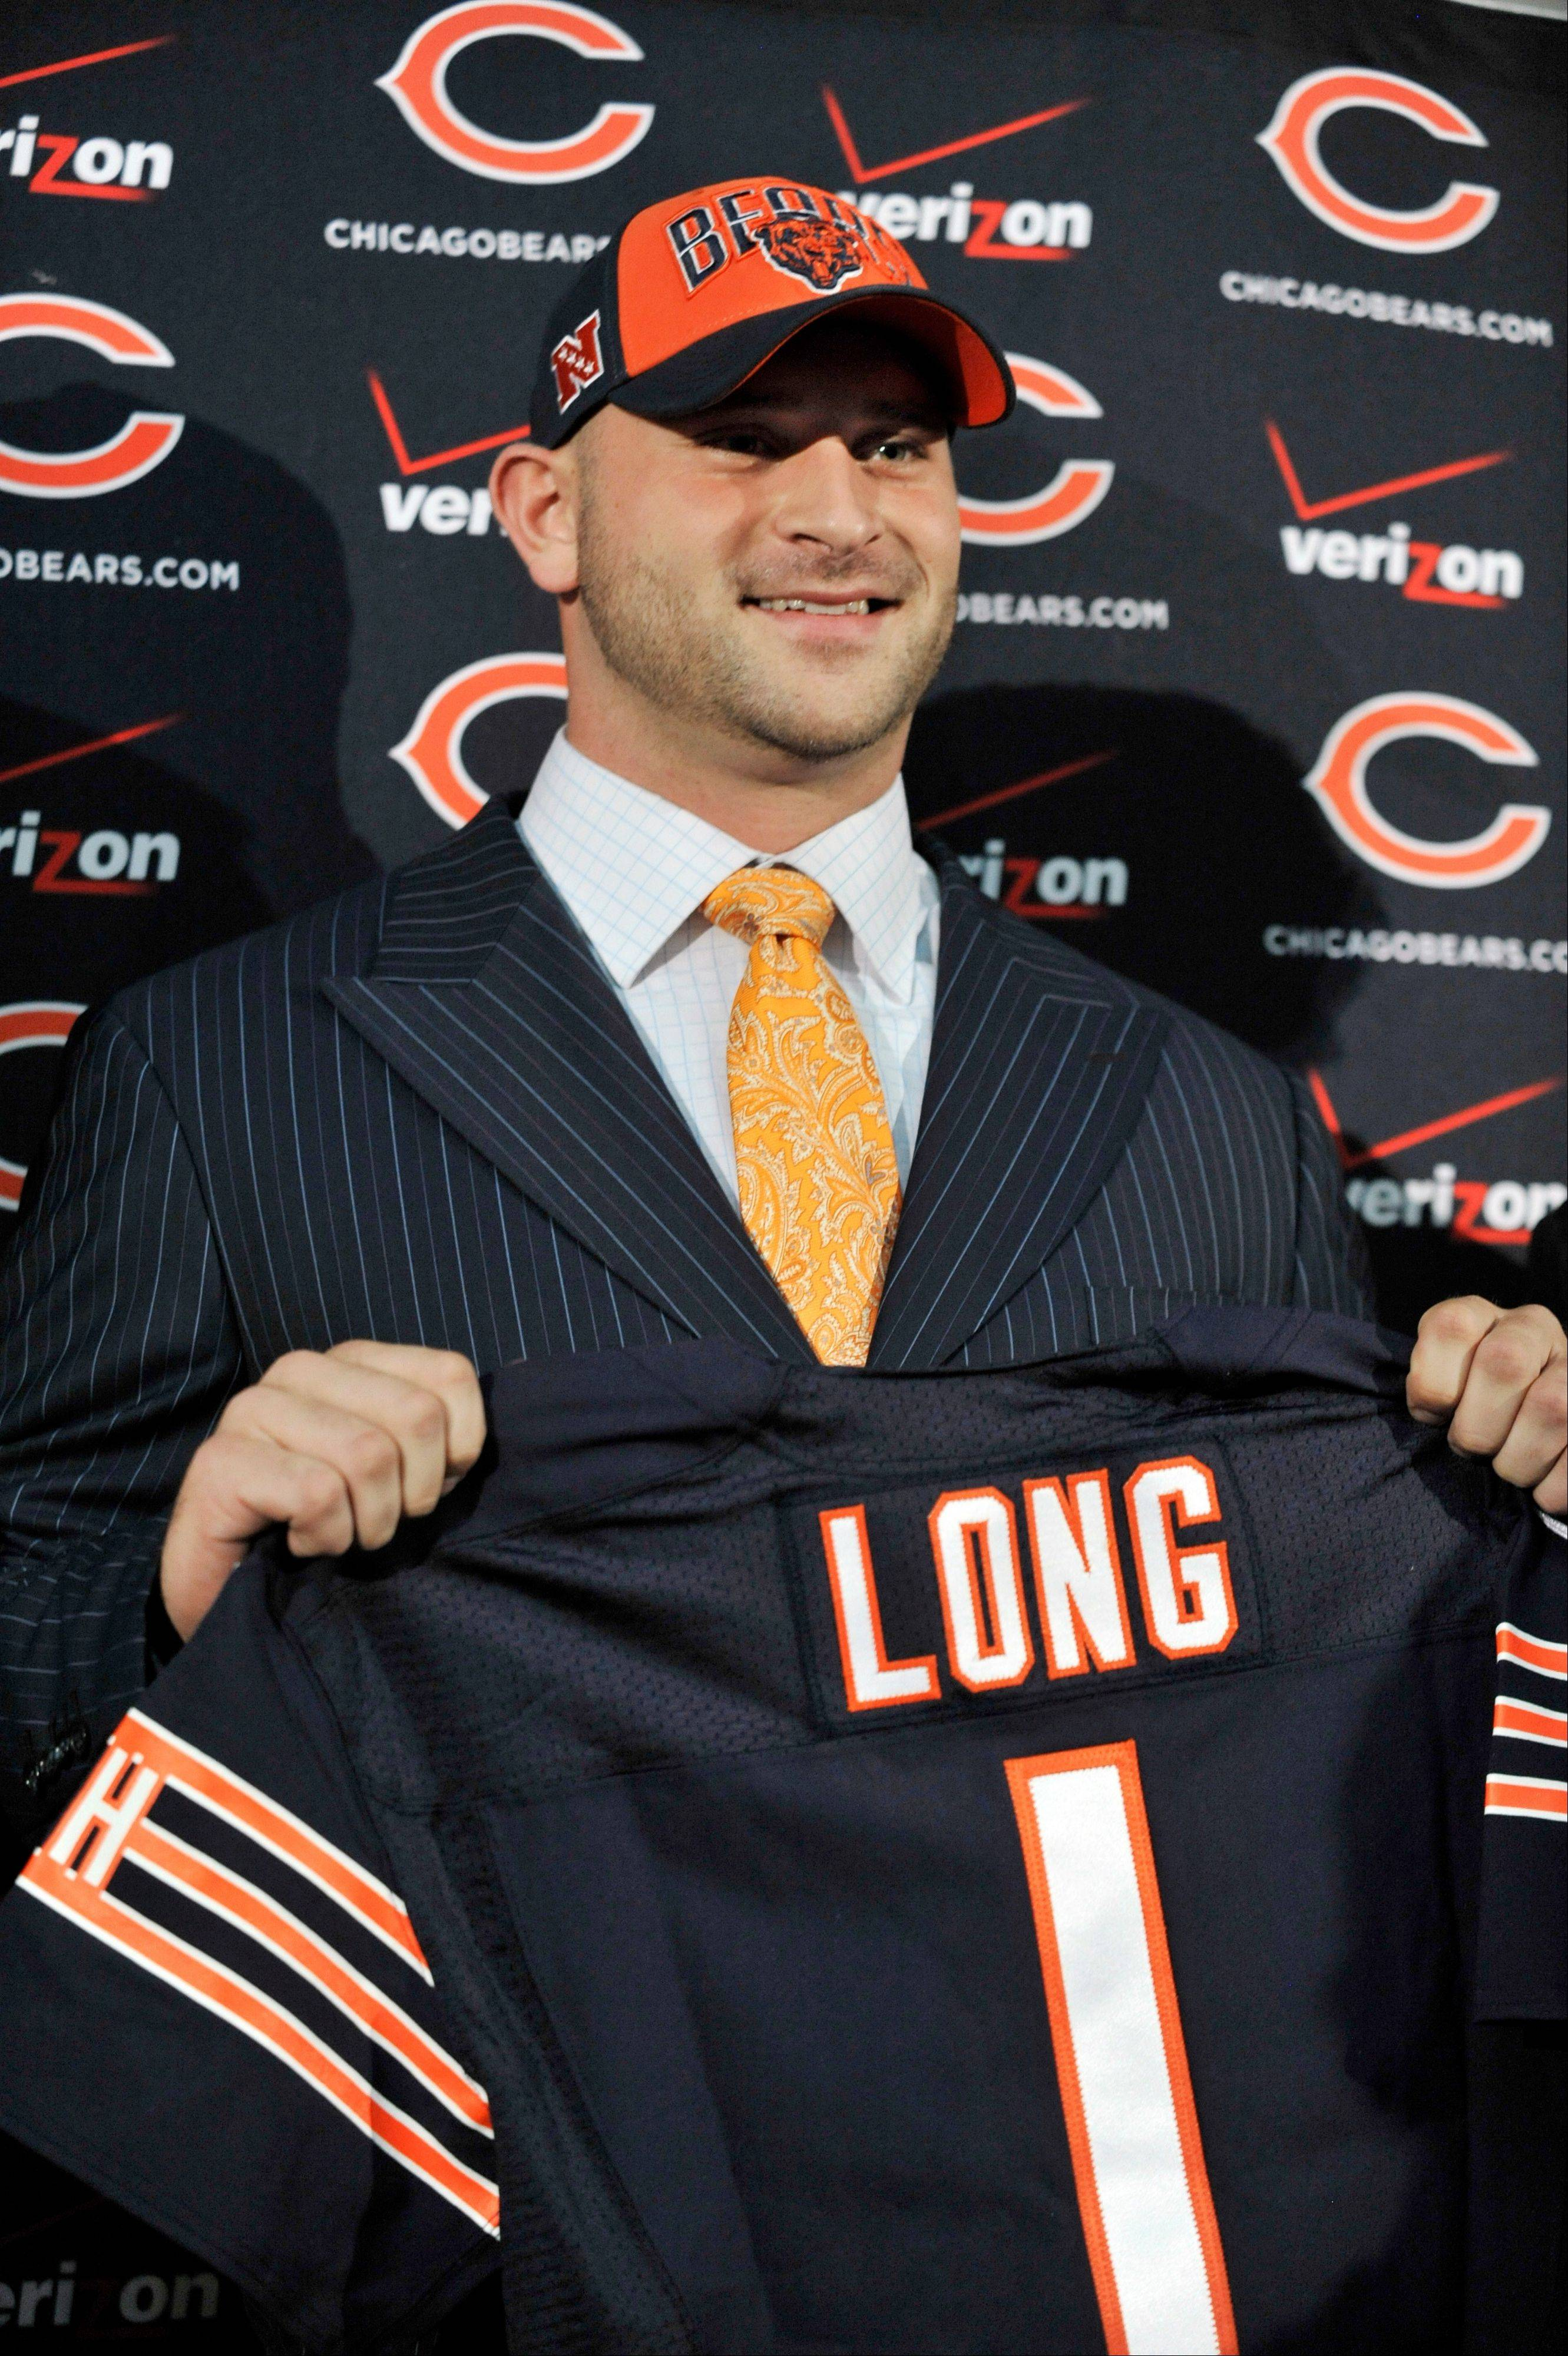 Chicago Bears first round draft Kyle Long holds up a jersey as he is introduced to the media during an NFL football news conference, Friday, April 26, 2013, at Halas Hall in Lake Forest, Ill.�Long, an offensive guard from Oregon, was selected 20th overall in Thursday's NFL draft.